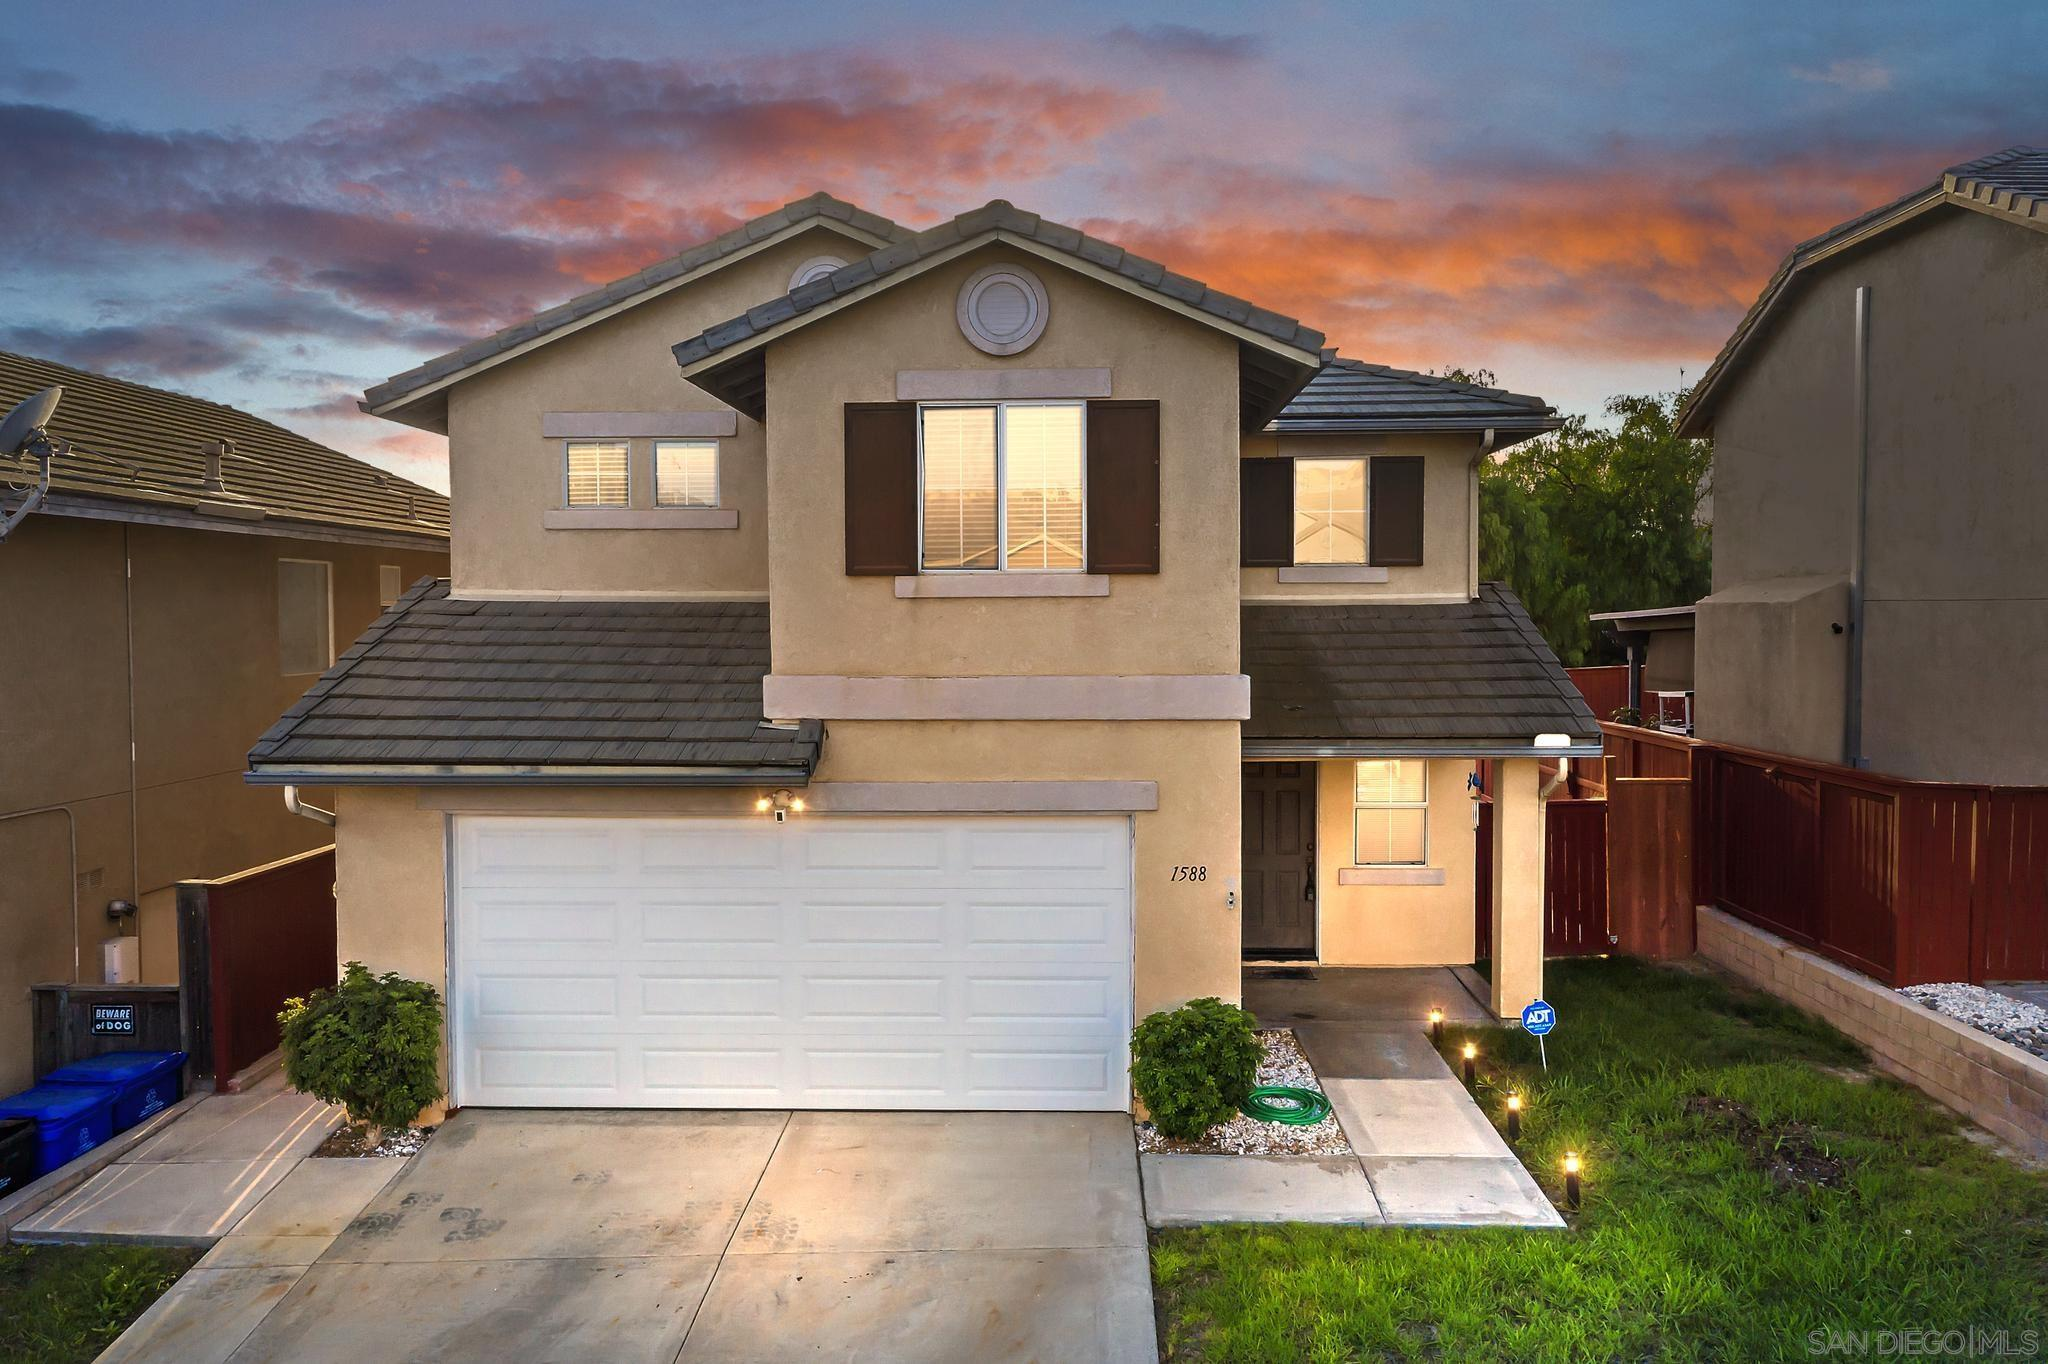 Remodeled 5-Bedroom House In Otay Mesa Southwest District